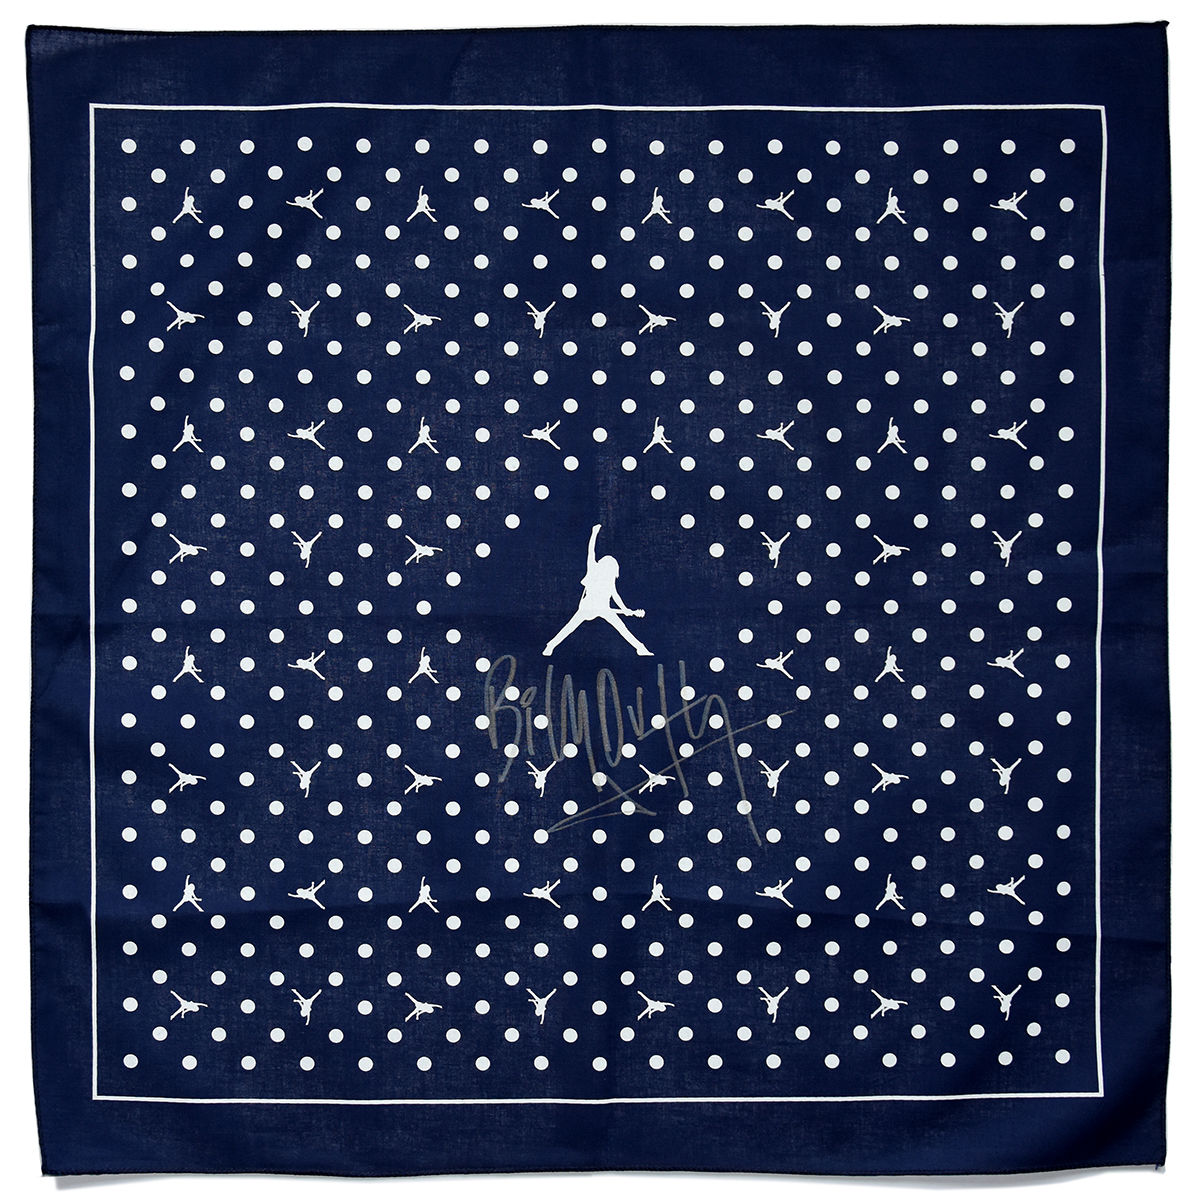 Signed BD Logo Bandana - Navy/White - product images  of